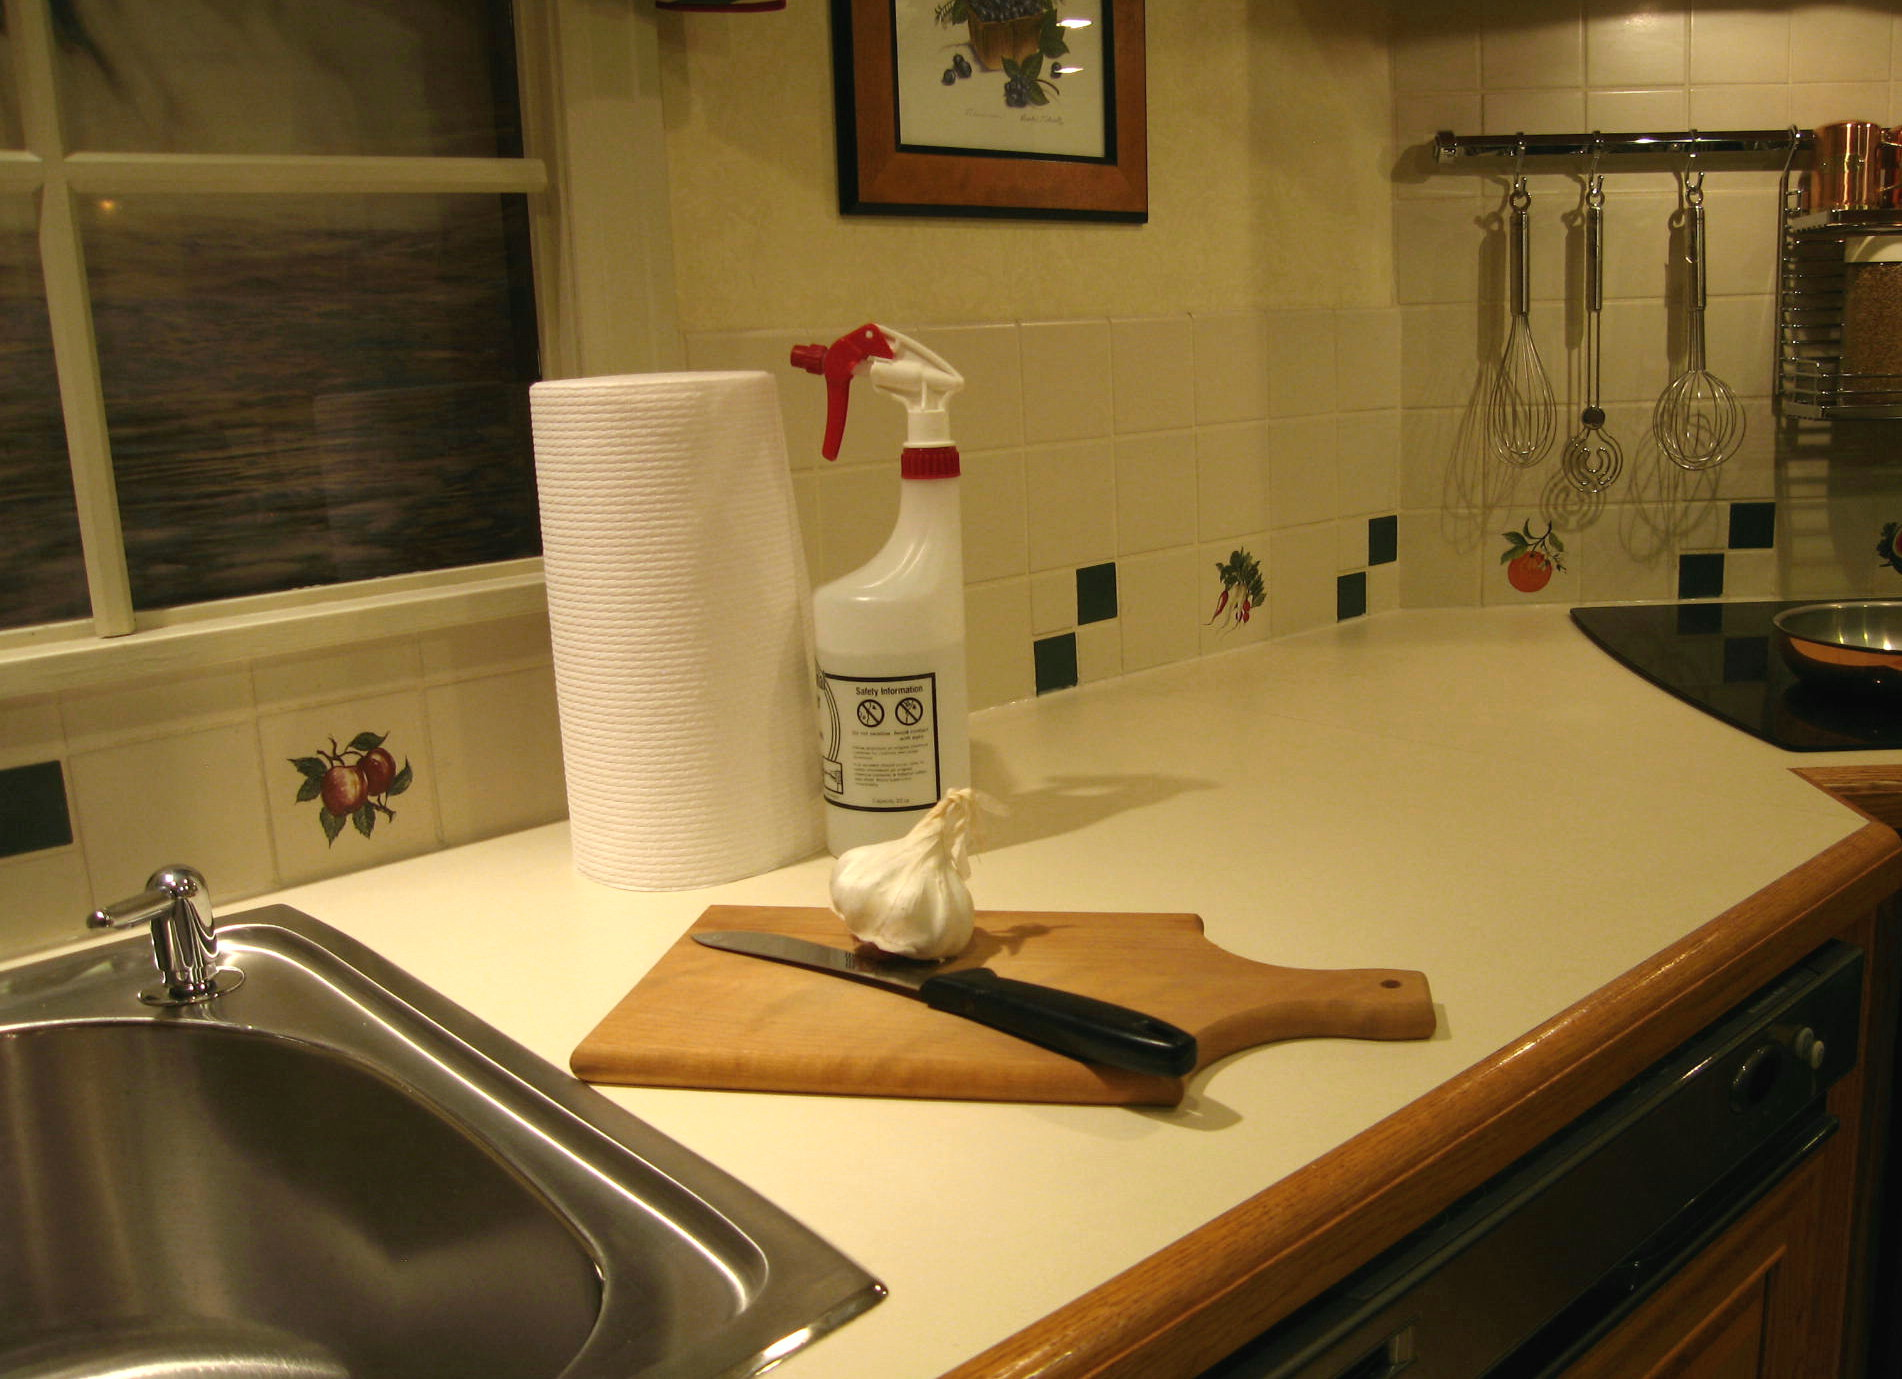 What Is The Best Way To Sanitize Kitchen Countertops